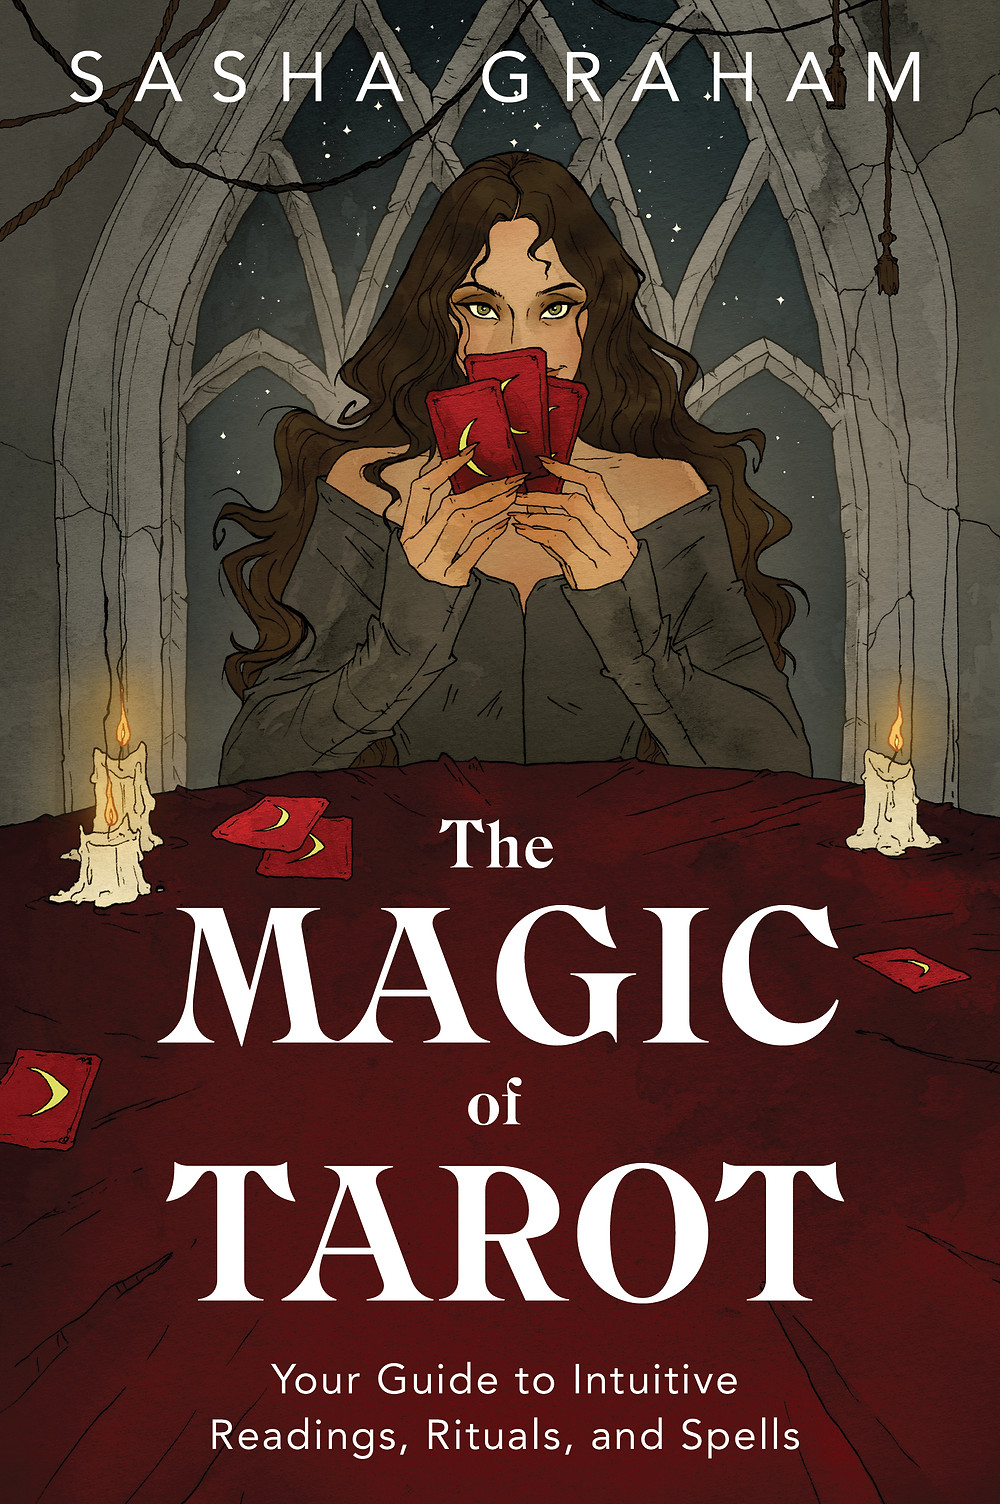 In her forthcoming book, The Magic of Tarot, Sasha gifts us with her unique and magical way of approaching tarot and life. She is also eminently practical. In her section on ways to study the tarot, she gives plenty of tips on ways to study and where to find materials.